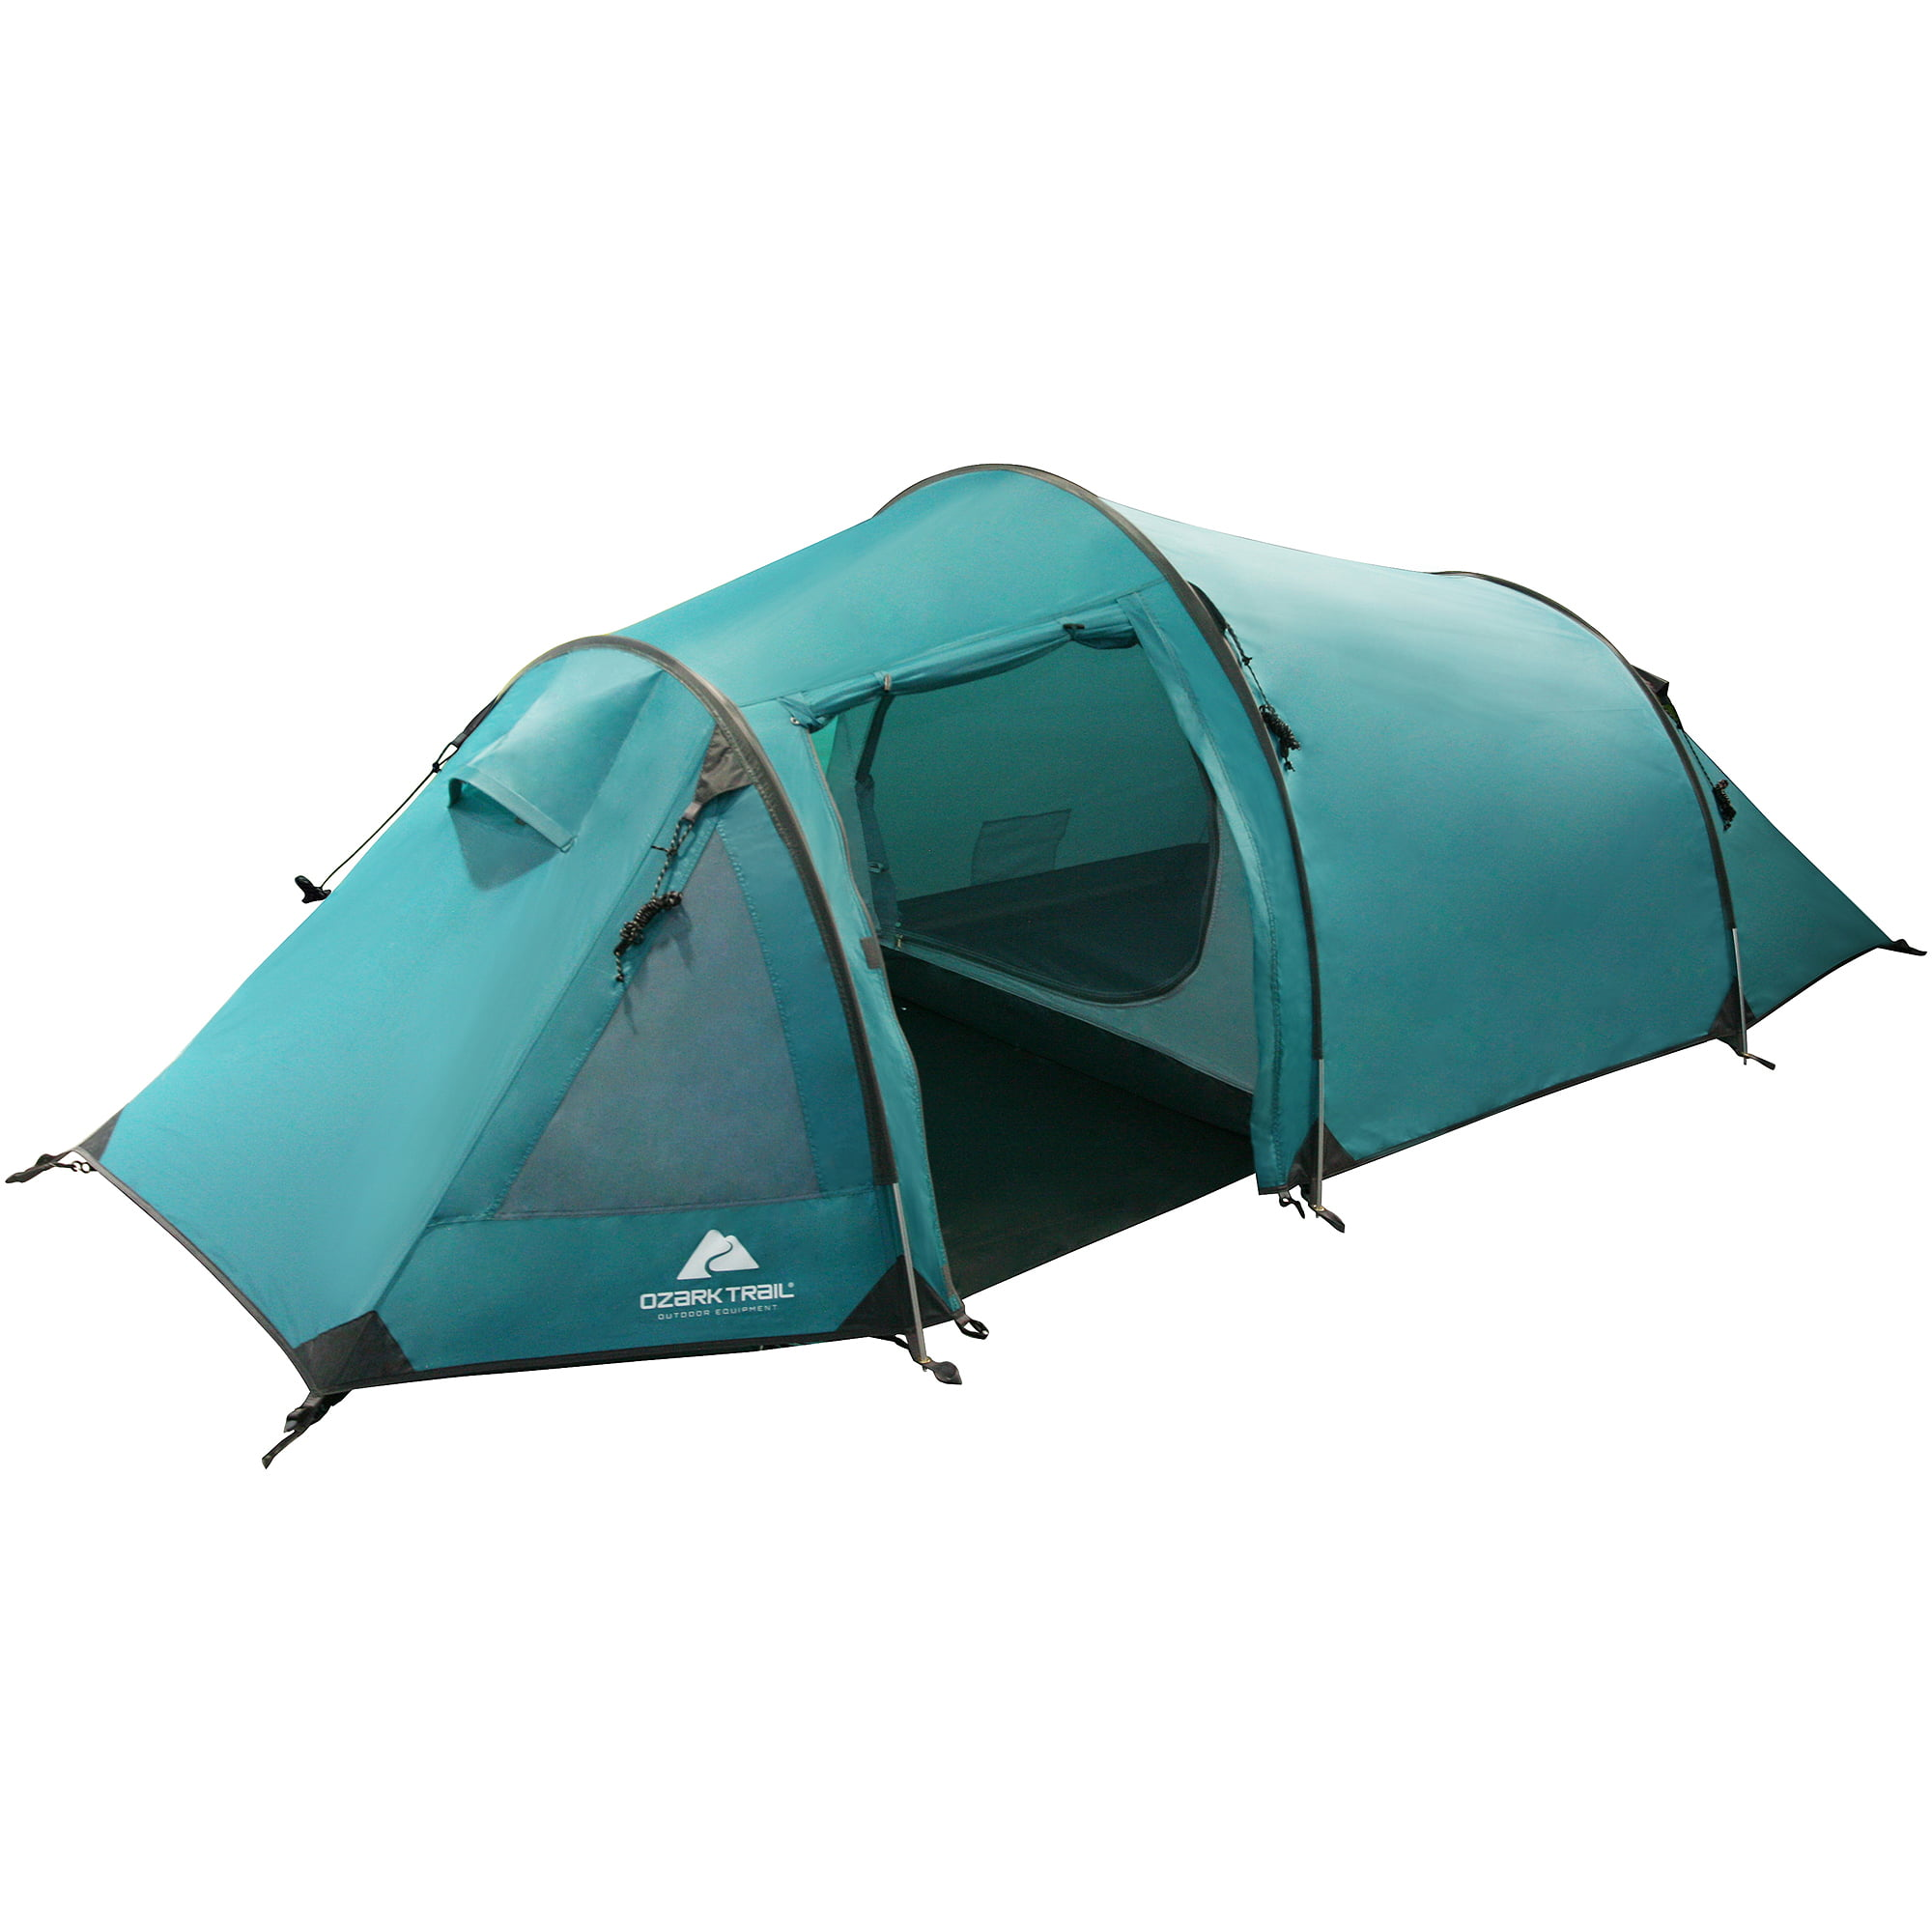 sc 1 st  Walmart & Ozark Trail Extended Stay Backpacking Tent Sleeps 2 - Walmart.com